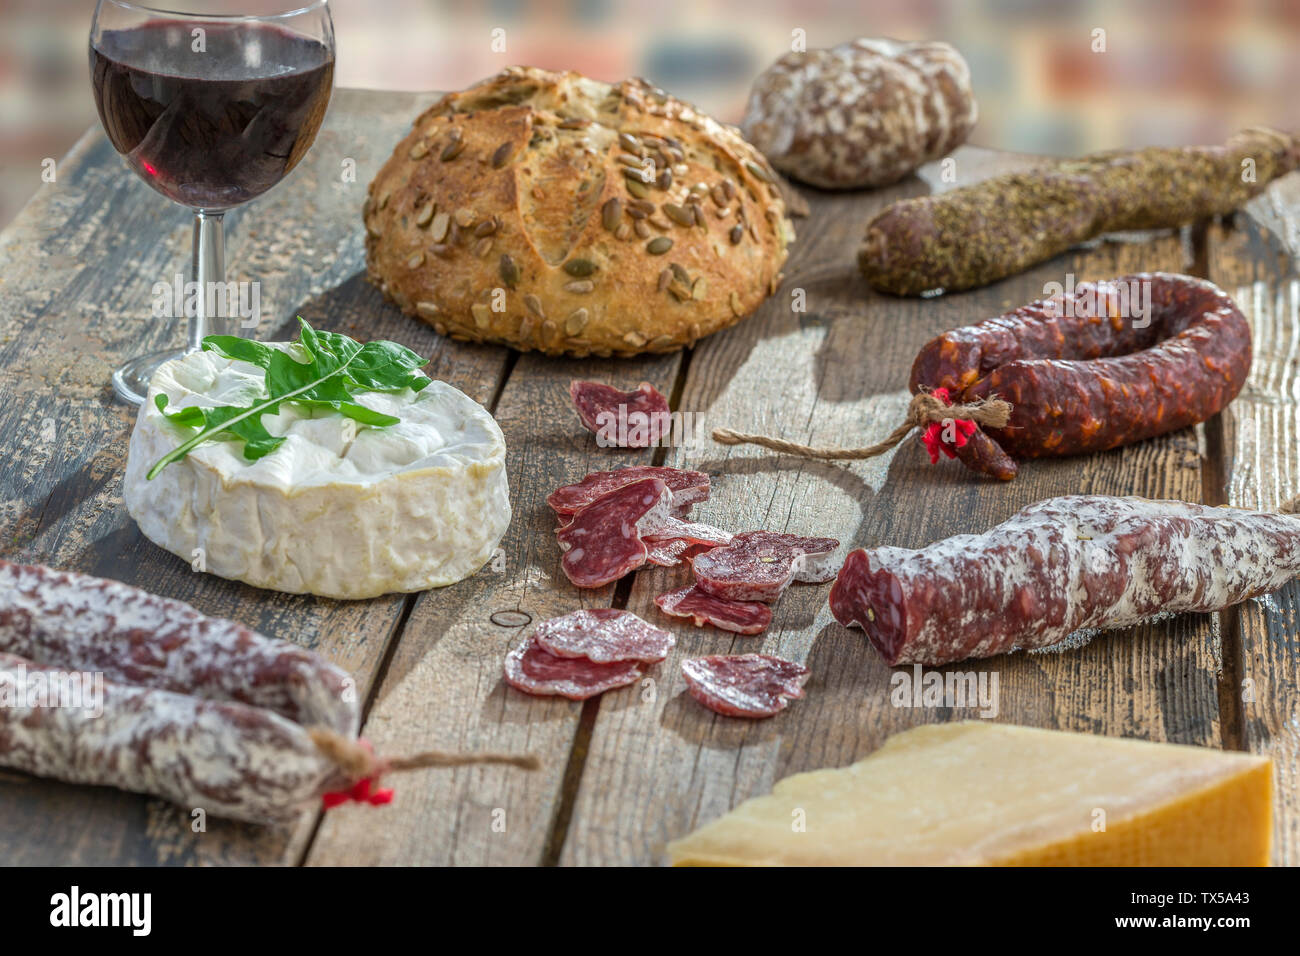 French snacks with wine - various types of cheeses, bread , dry saussages, charcuterie, red vine on a gray background. Top view. Stock Photo